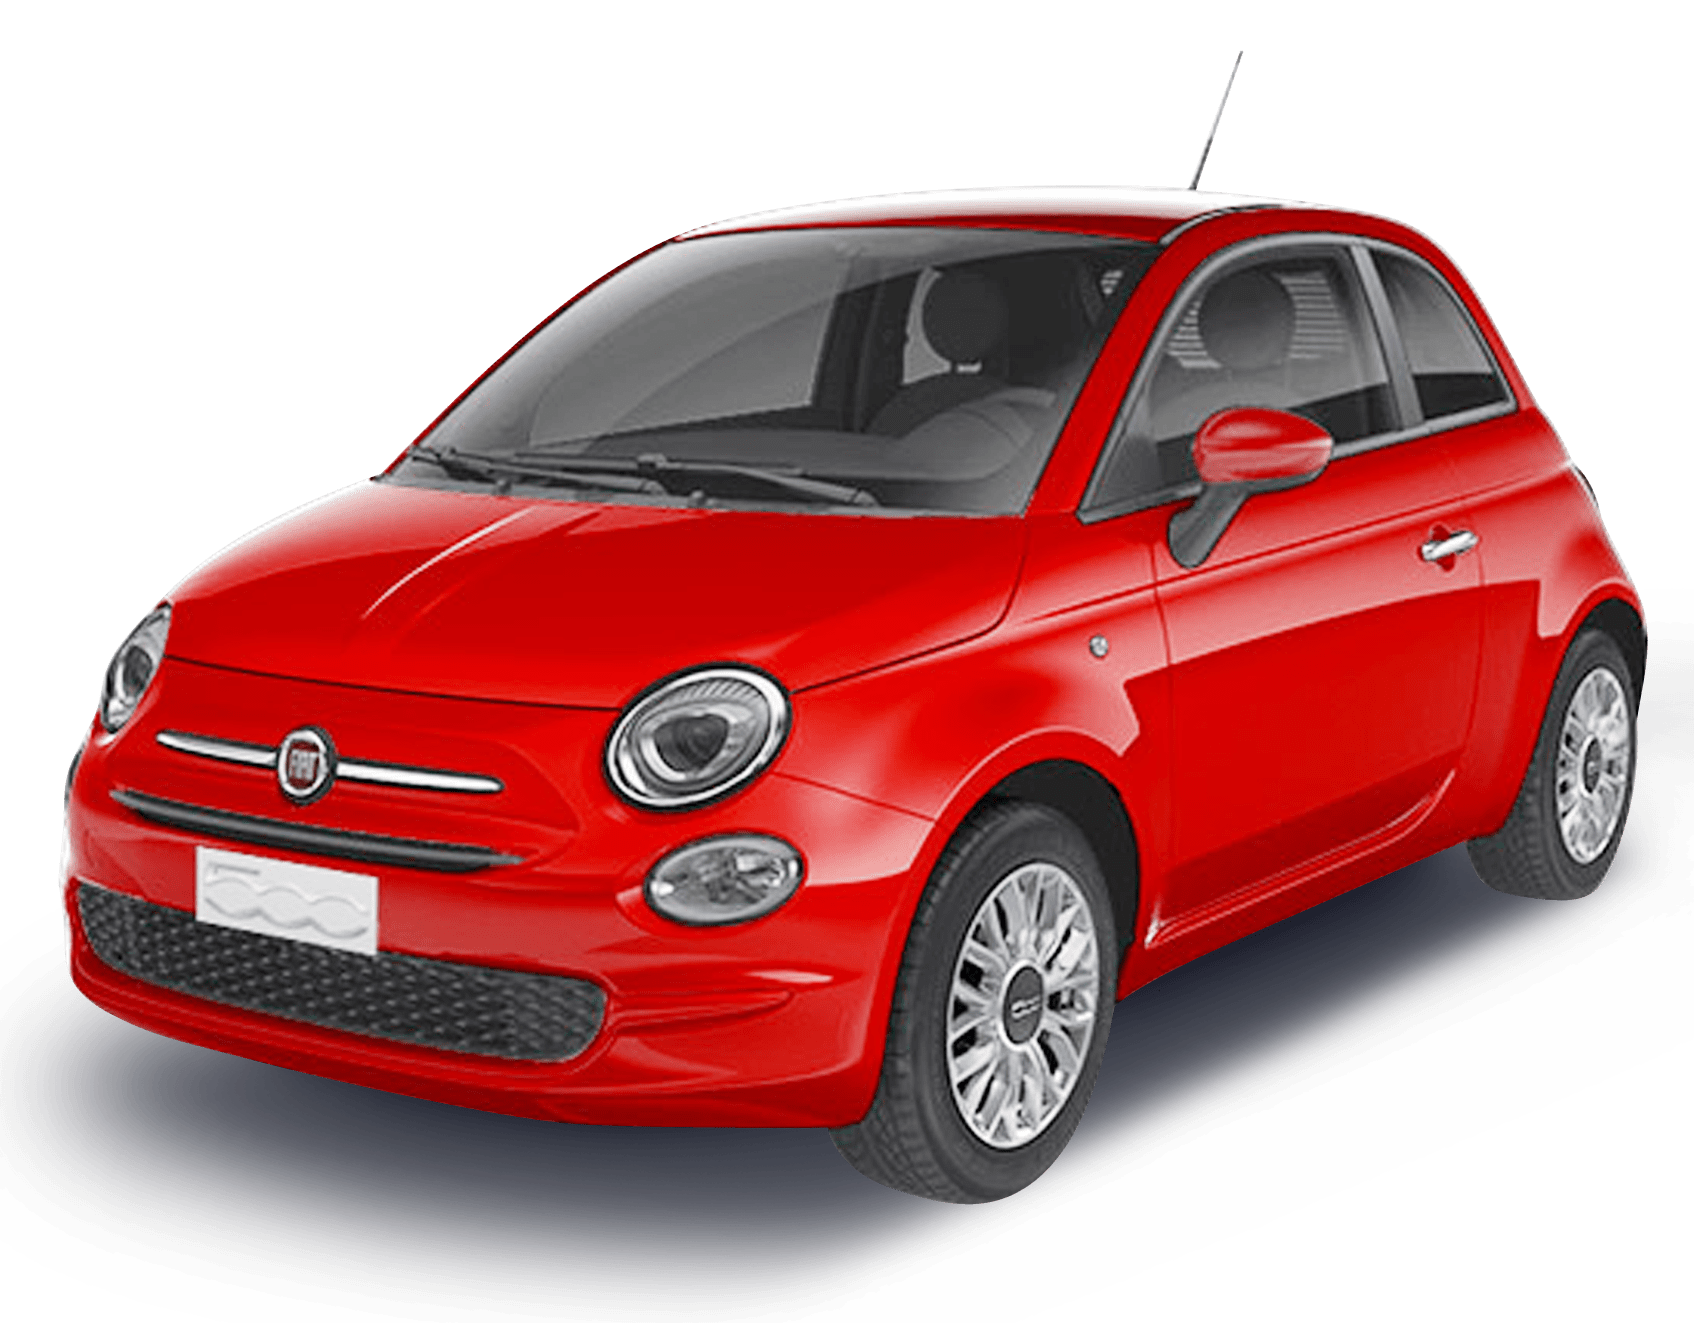 Fiat 500 Review For Sale Colours Price Interior Specs Carsguide